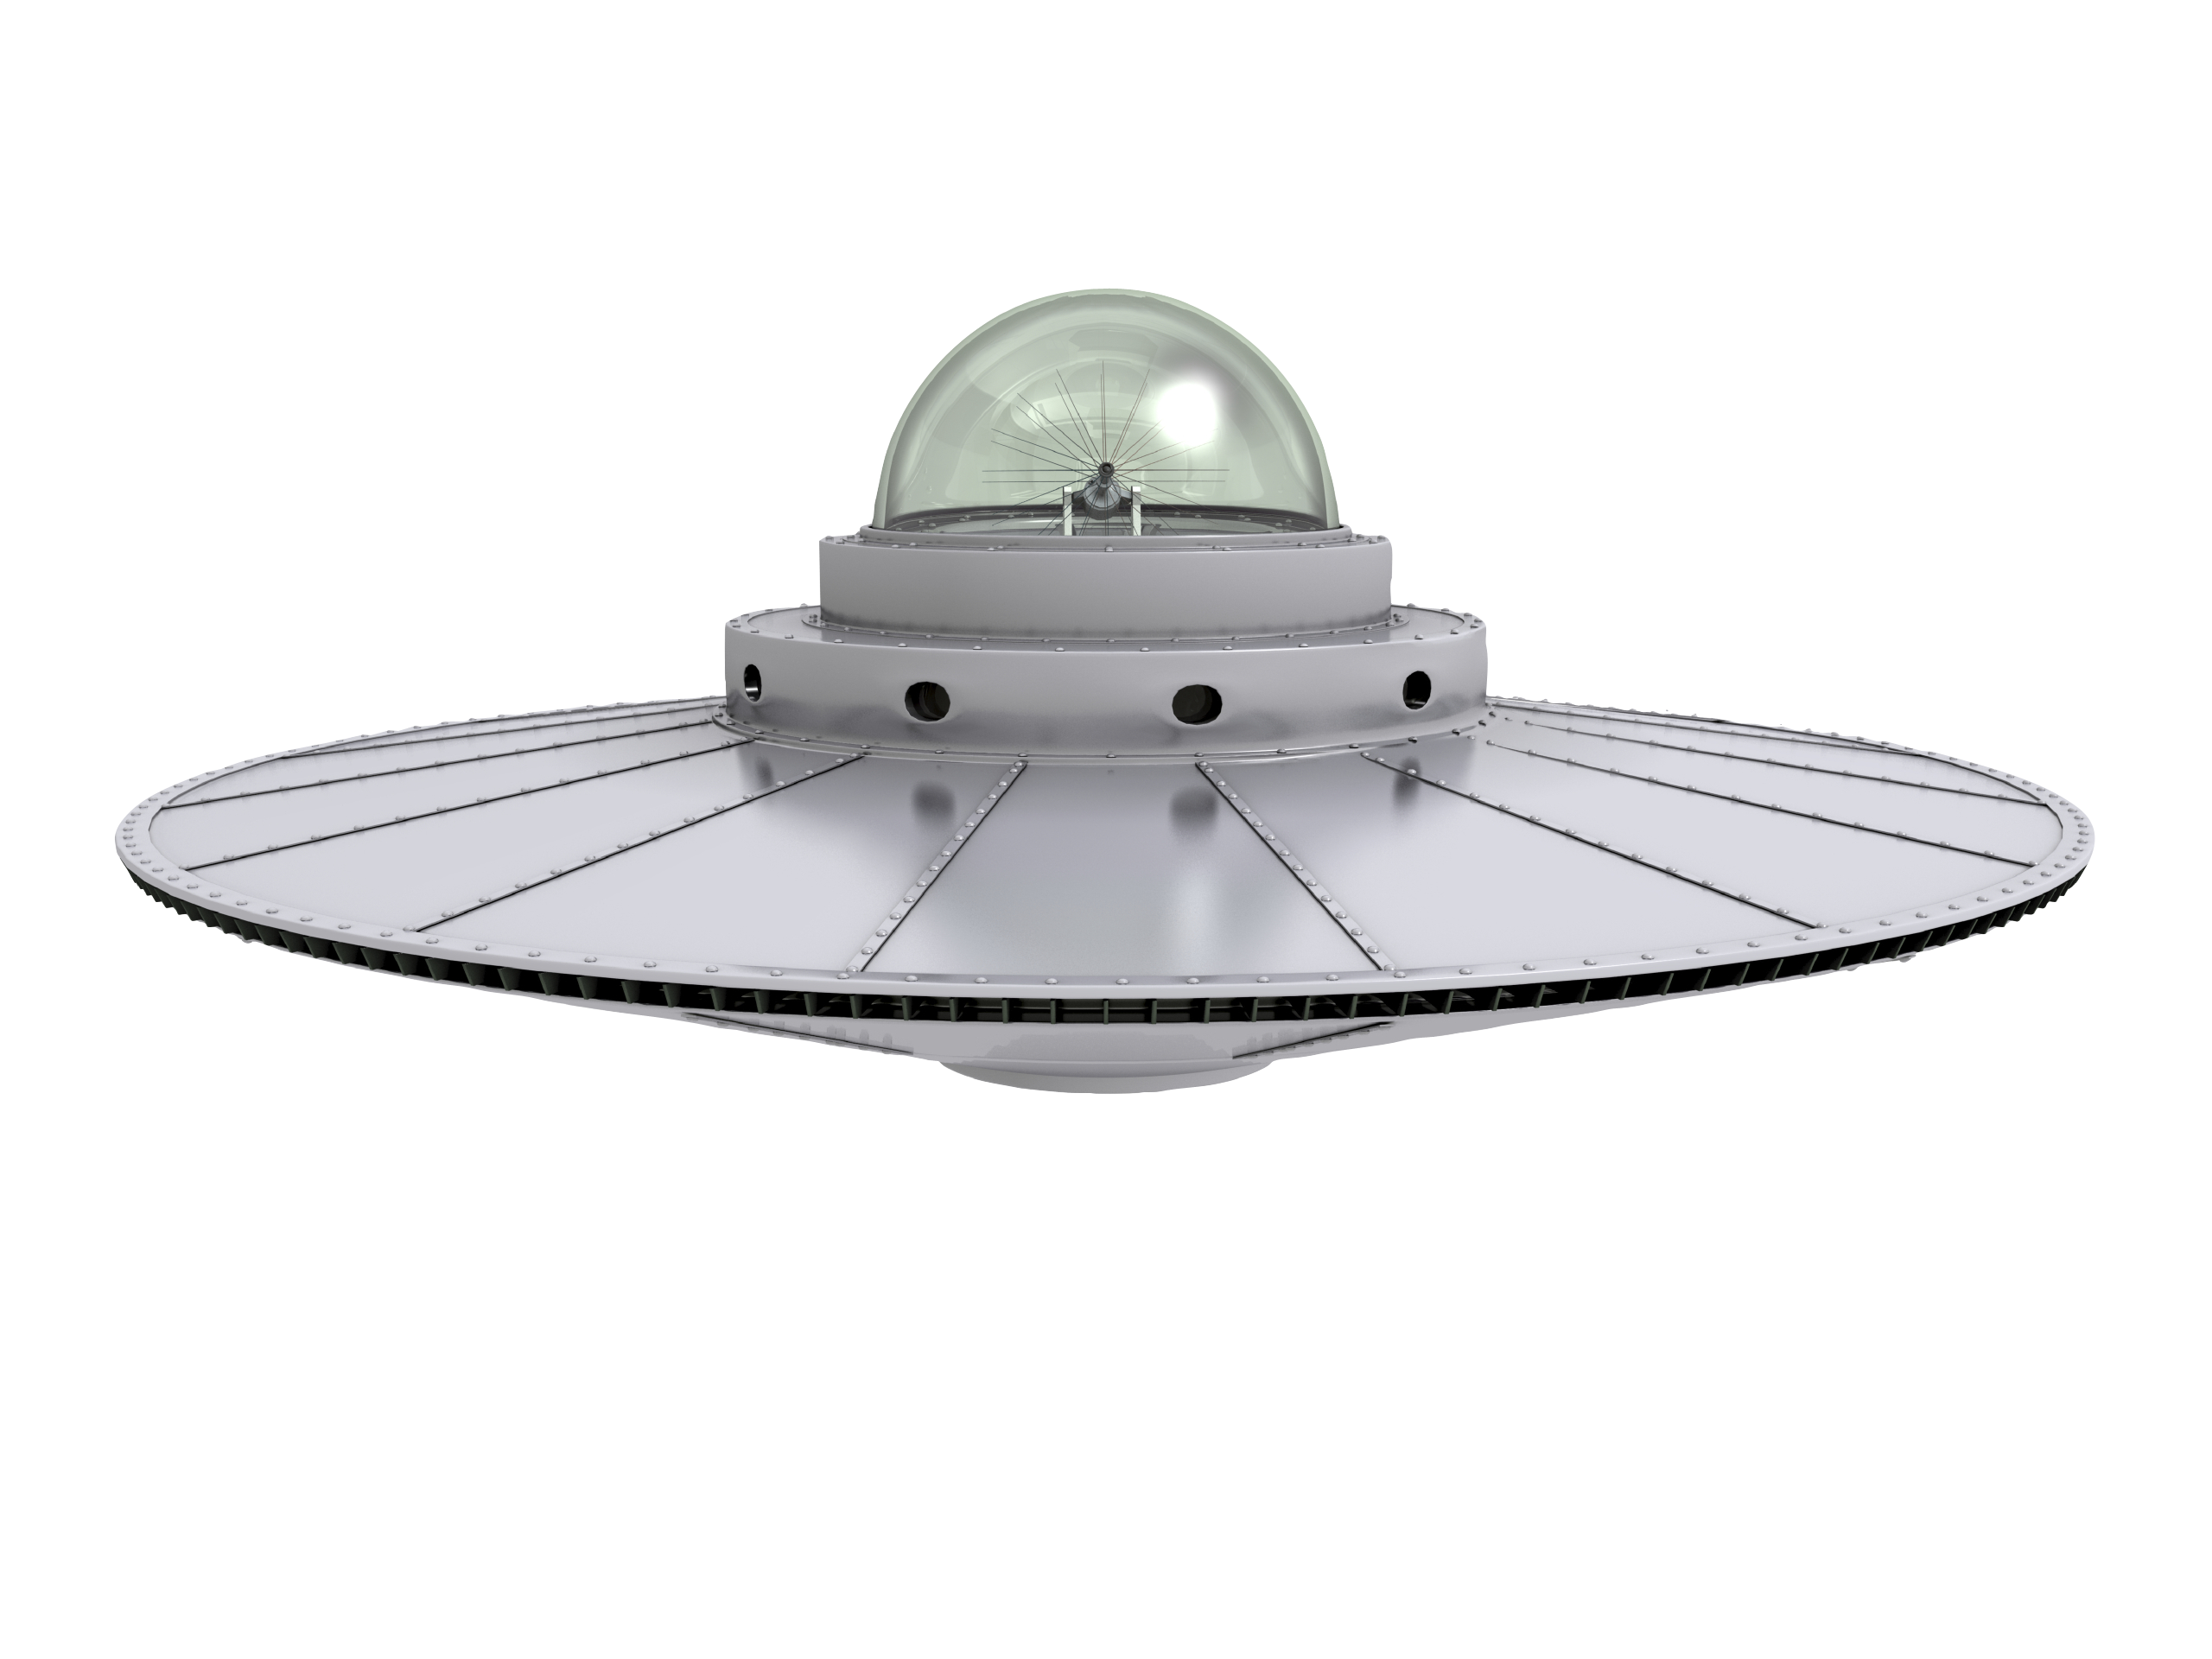 flyingsaucer | Explore flyingsaucer on DeviantArt for Ufo Ship Png  55dqh